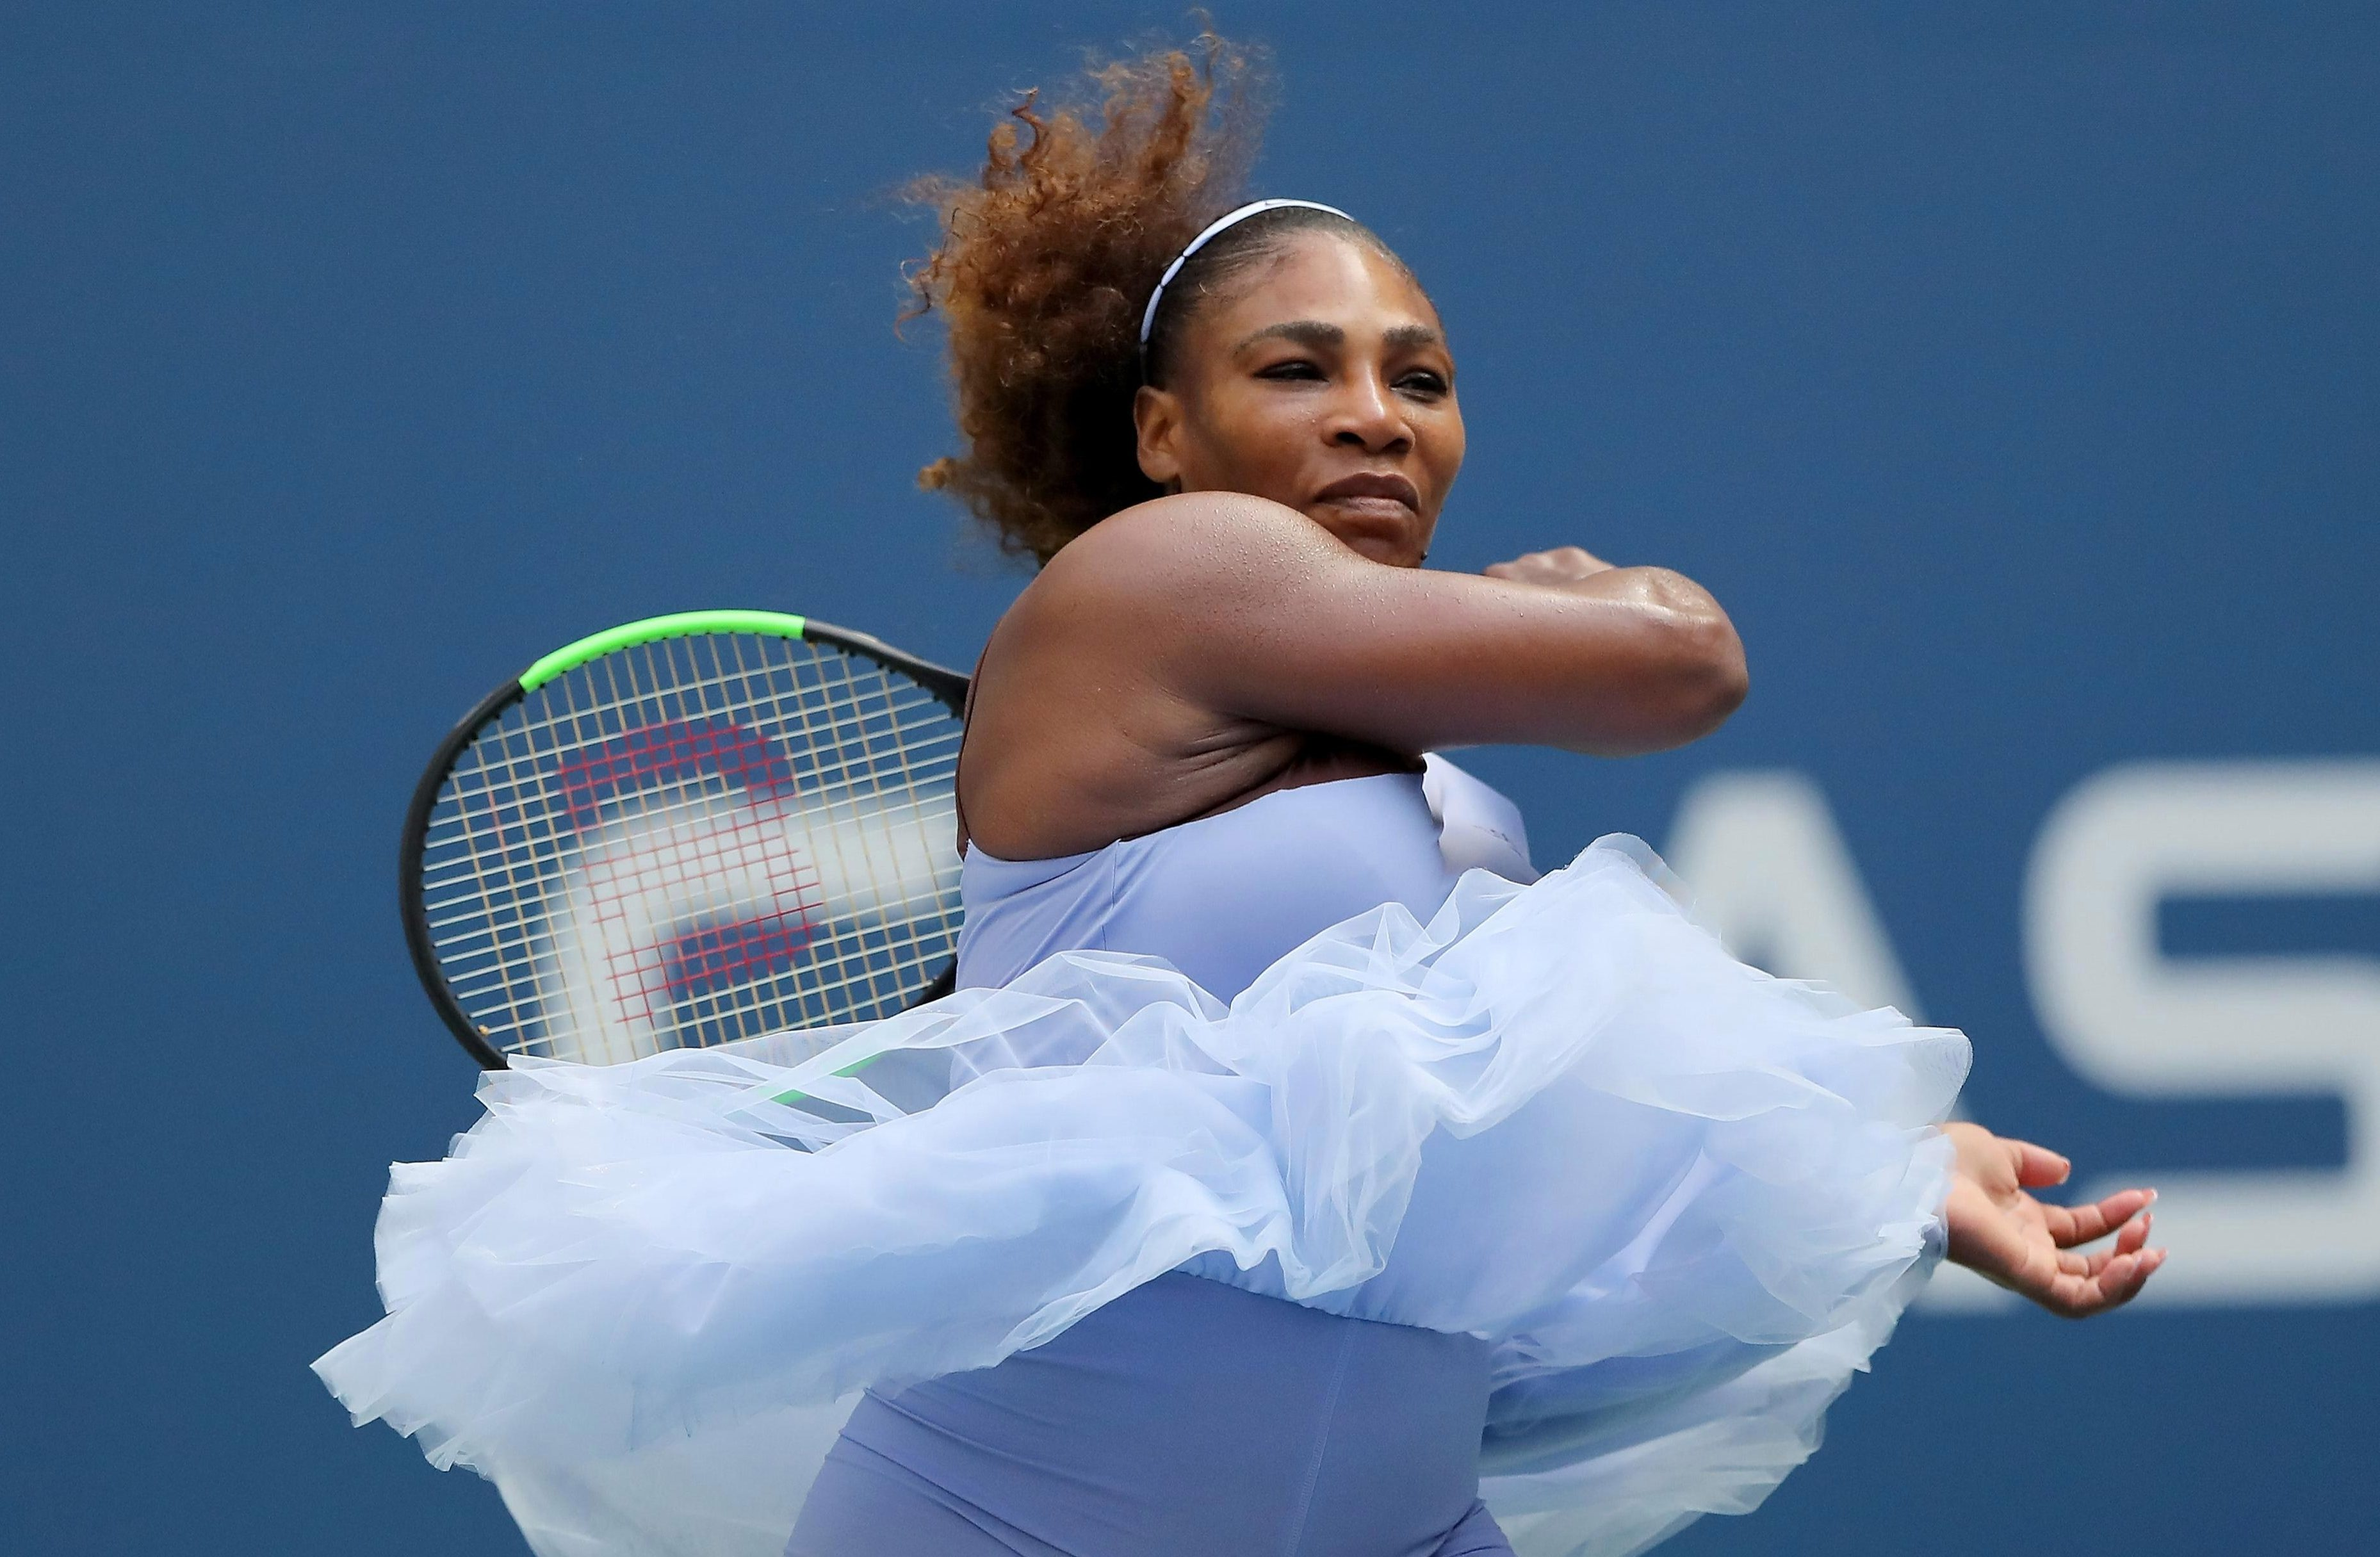 Serena Williams is another American ace to be used by the sportswear giant